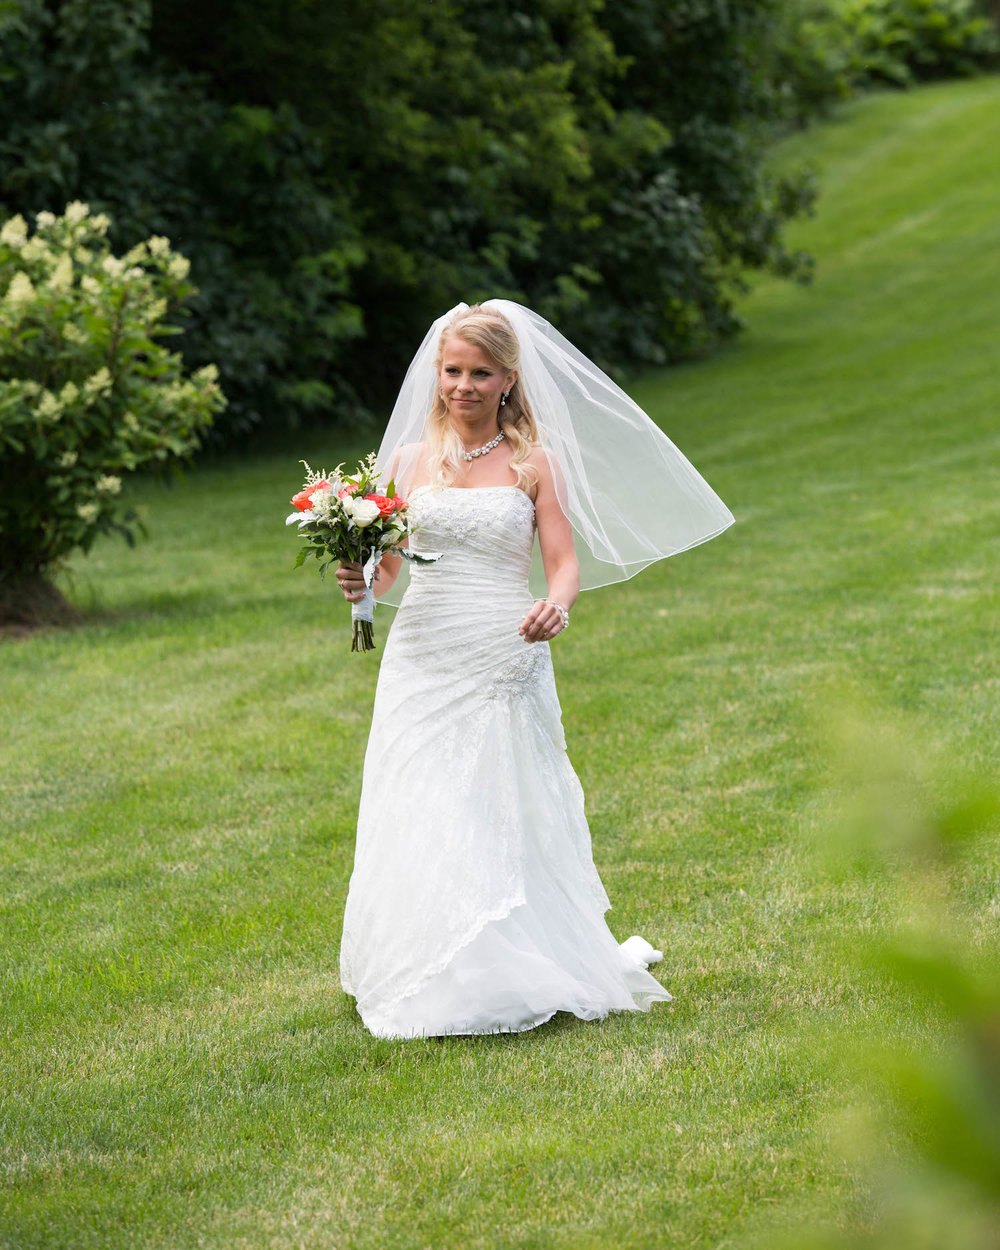 Cindyrellas Garden, outdoor lake ceremony in Minnesota, first look down the hill